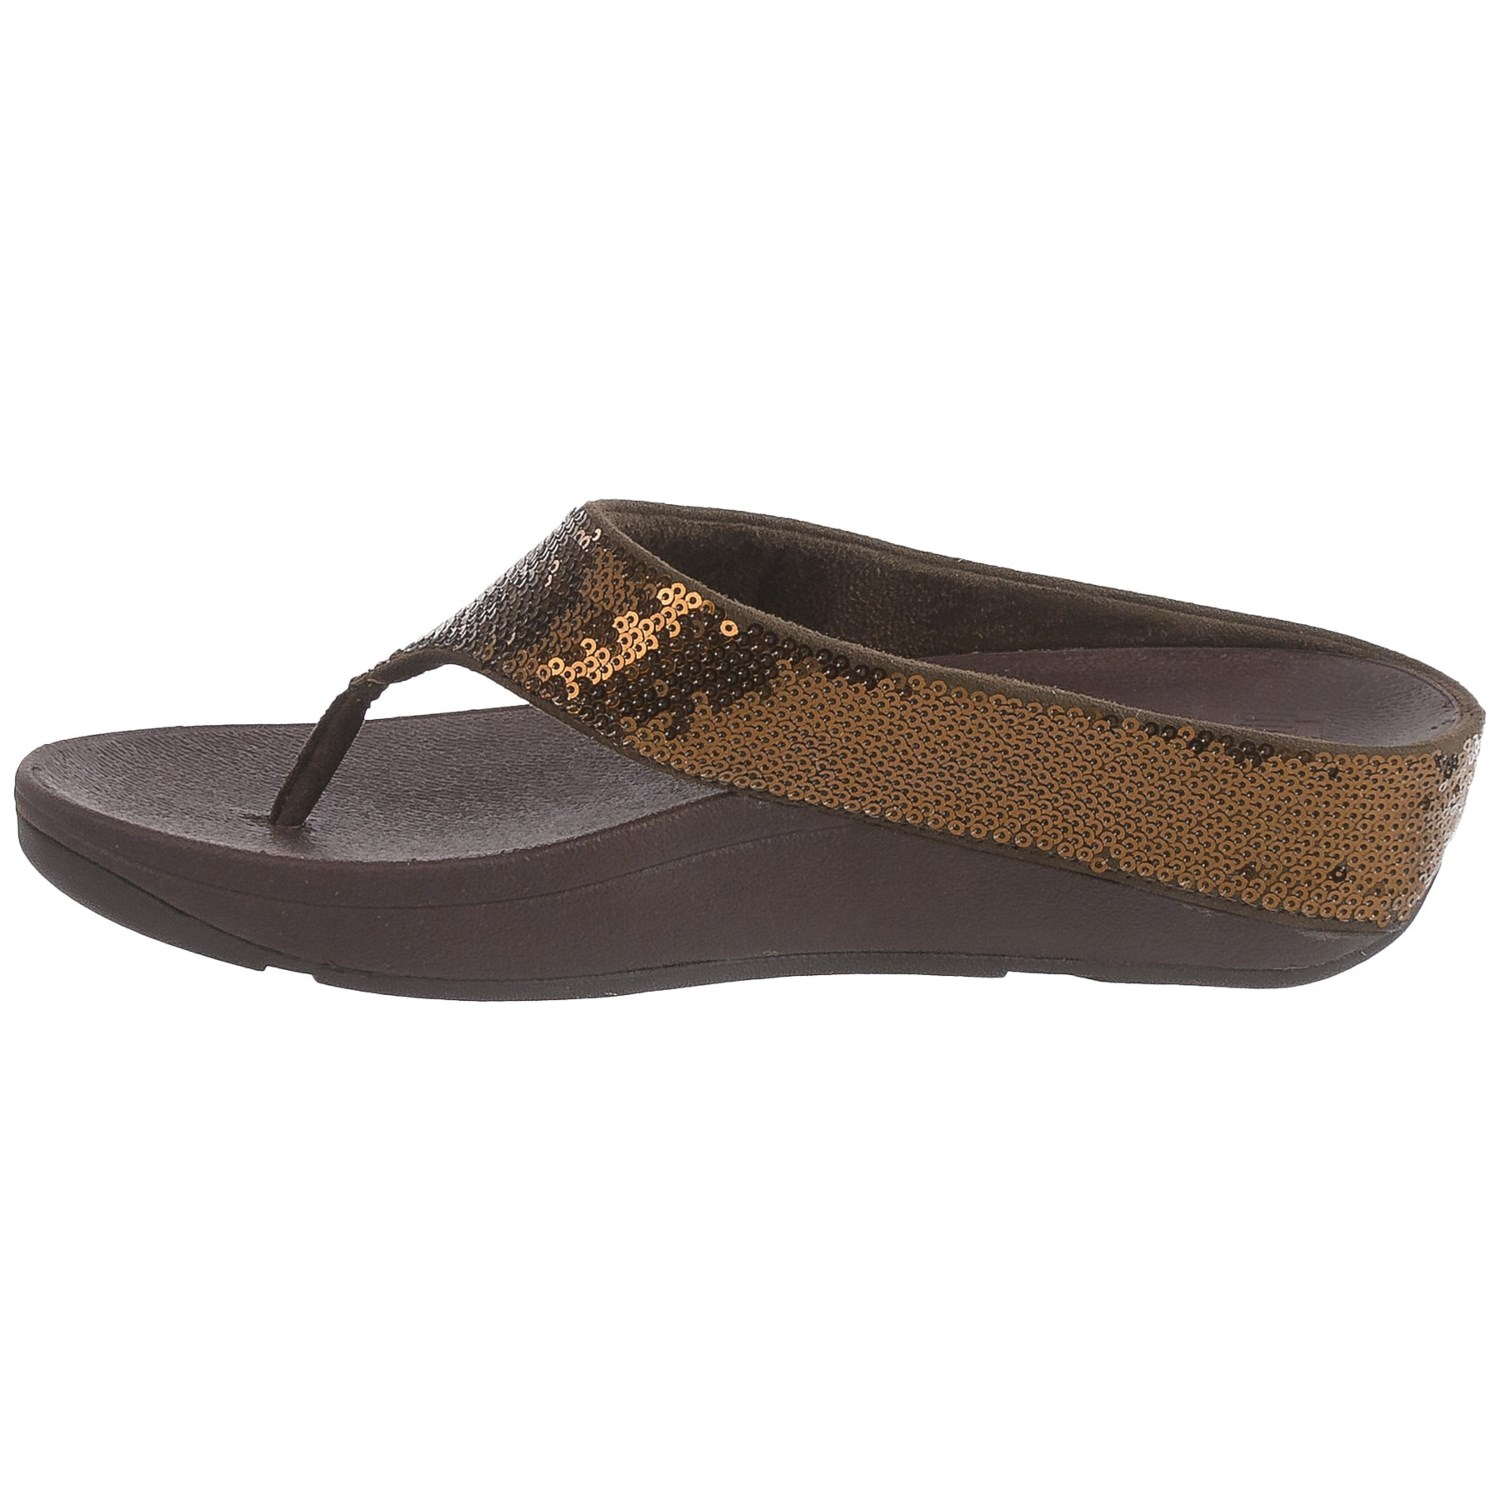 FitFlop Ringer Sequin Toe Post r4CUonmYM